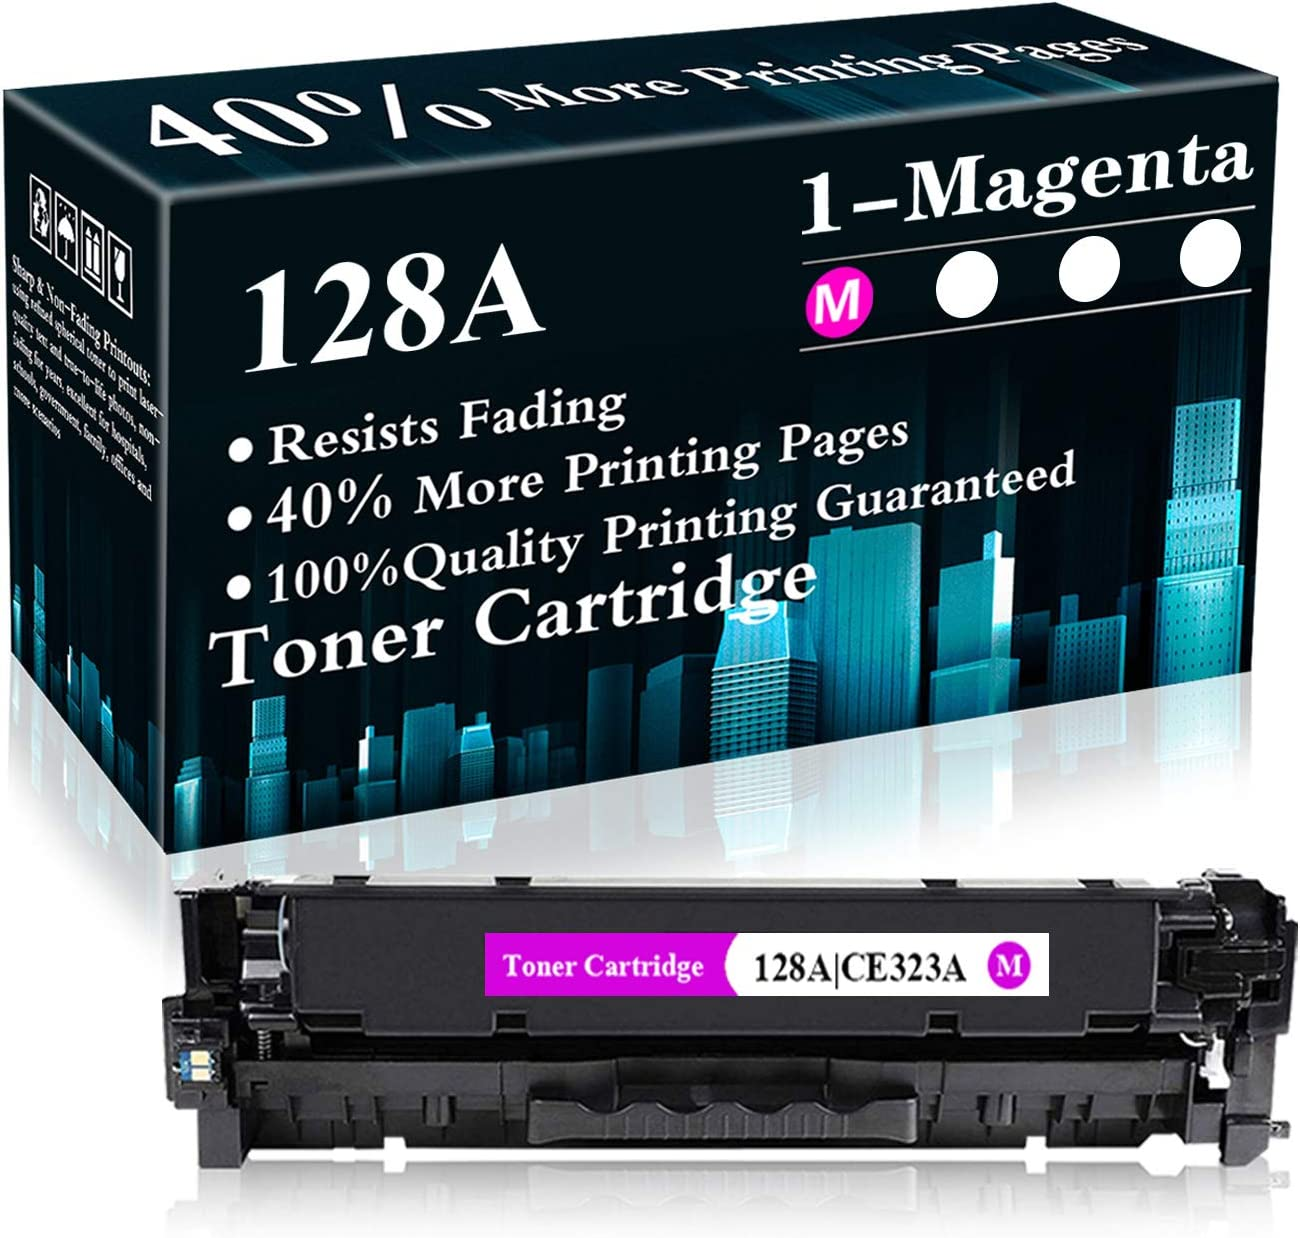 CE323A Remanufactured Toner Cartridge Replacement for HP Color Laserjet Pro CP1525n,CP1525nw,CM1415fn MFP,CM1415fnw MFP Printer,Sold by TopInk 1 Pack 128A